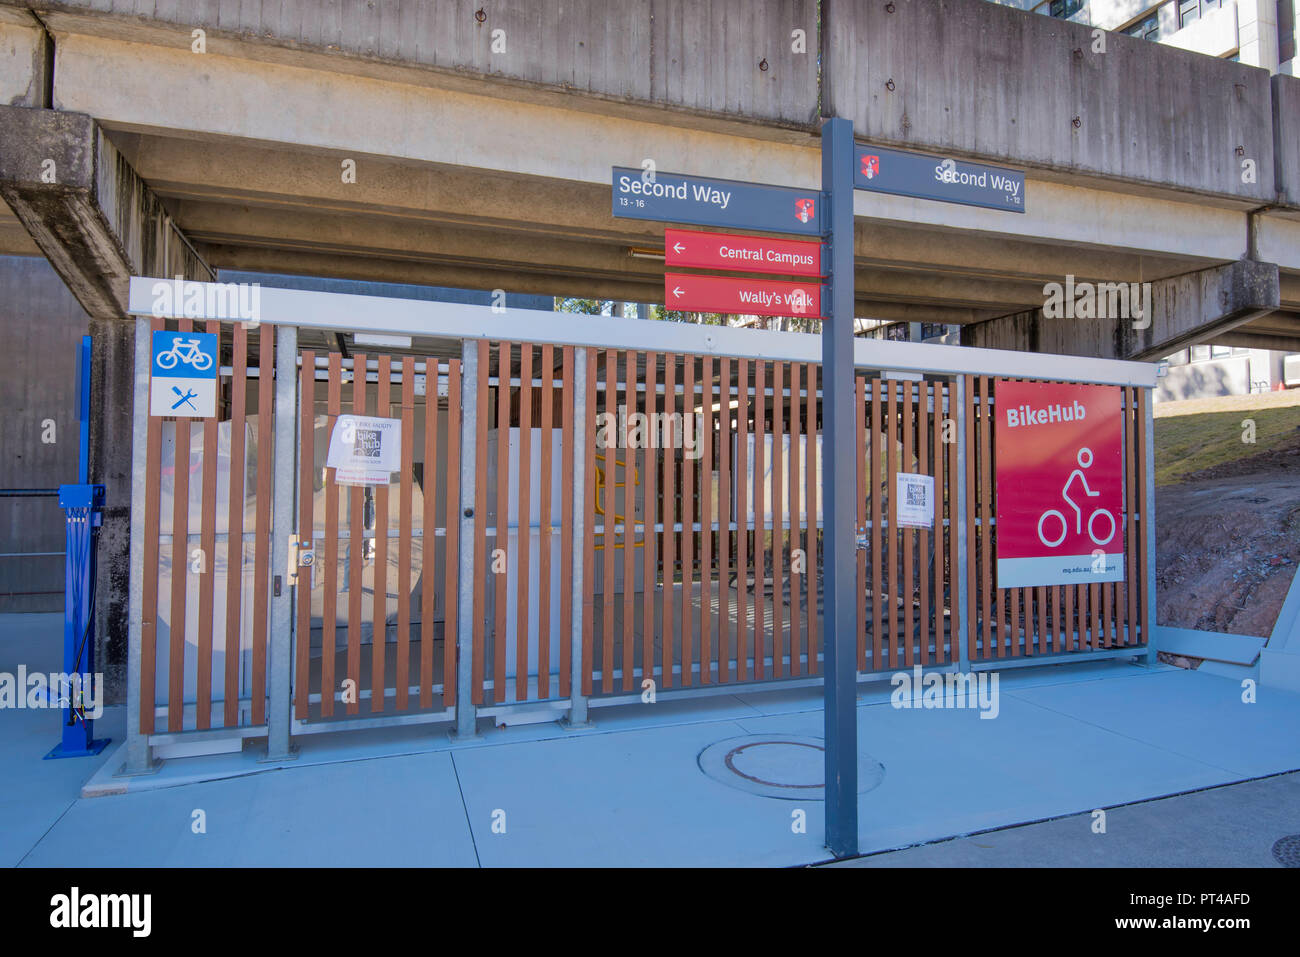 A new secure bike or bicycle storage area at Macquarie University, Sydney, Australia - Stock Image